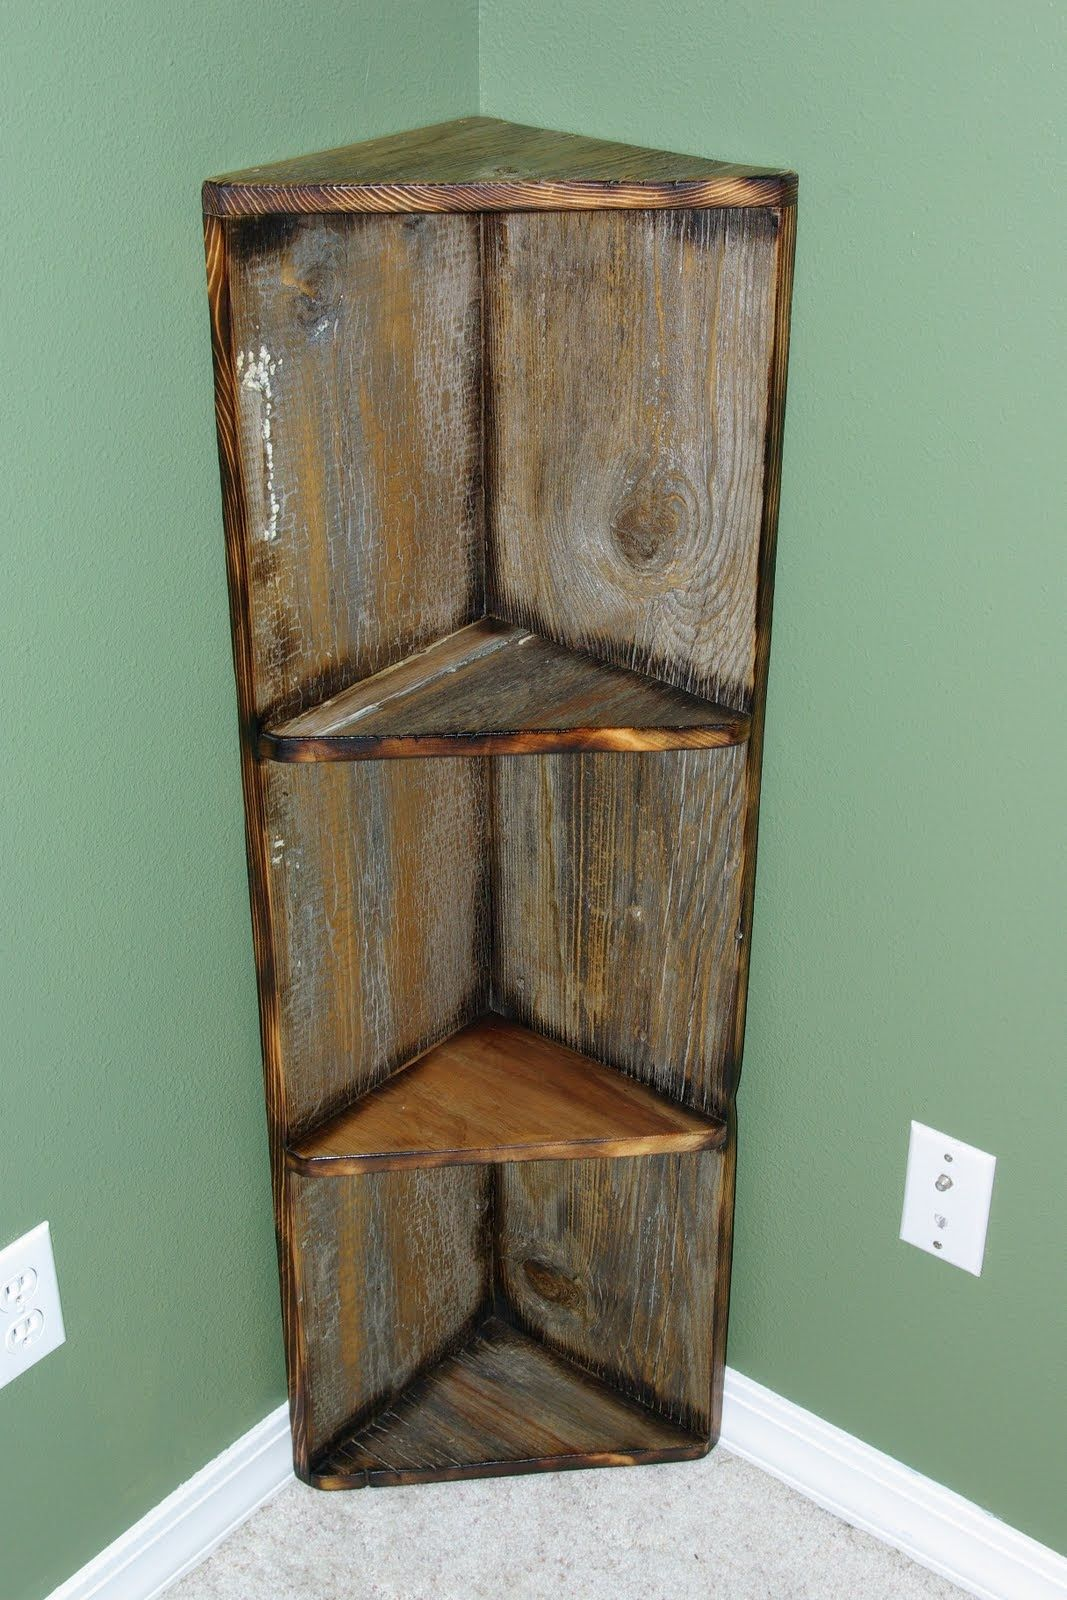 Old Barn Wood Home Decor Easy To Place Decorative Corner Shelf This Can Be